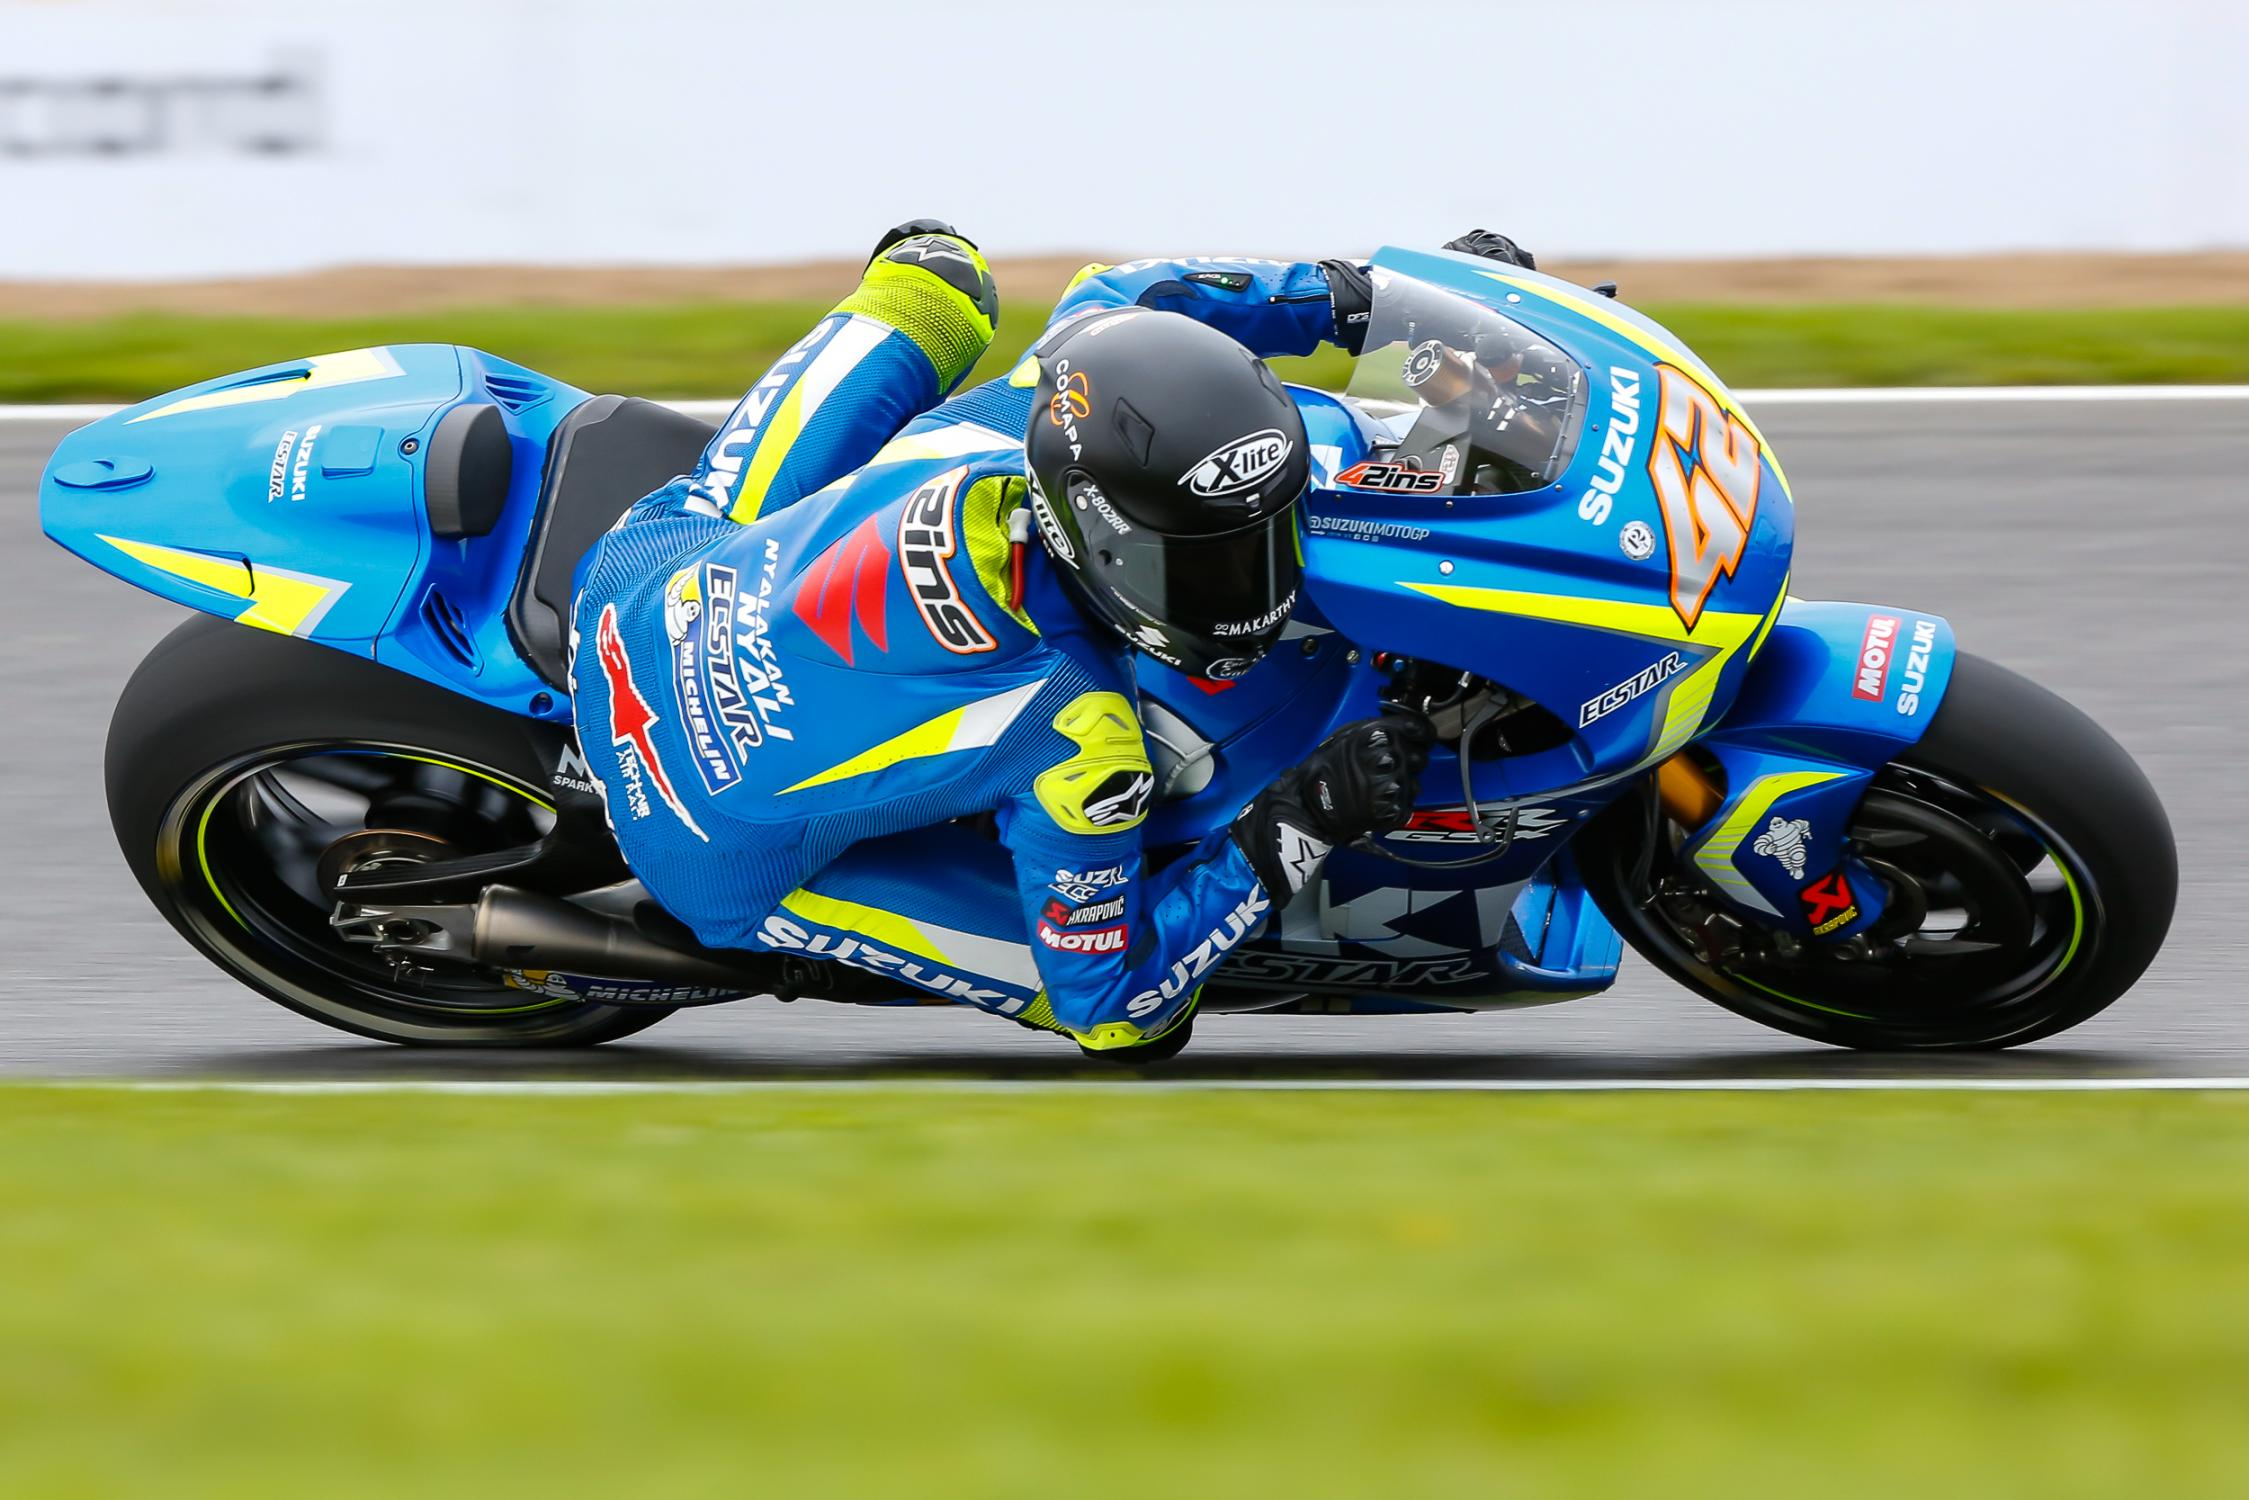 42-alex-rins-esp_gp_6143-gallery_full_top_fullscreen